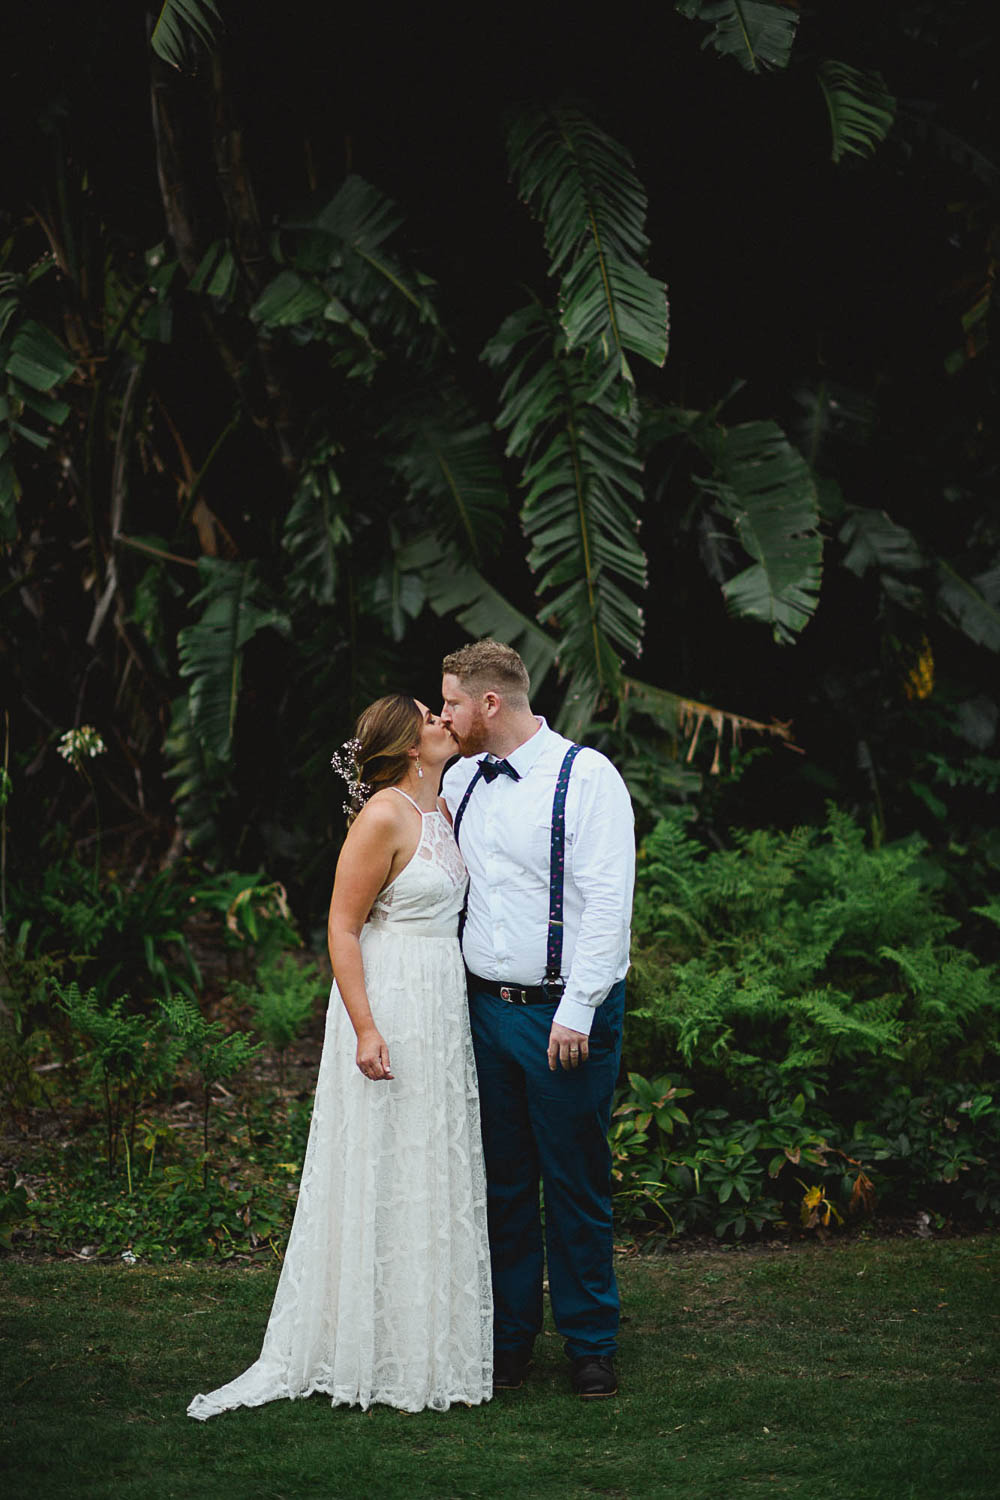 Bohemian Prints - Bohemian Wedding Jess and Matt-2.jpg